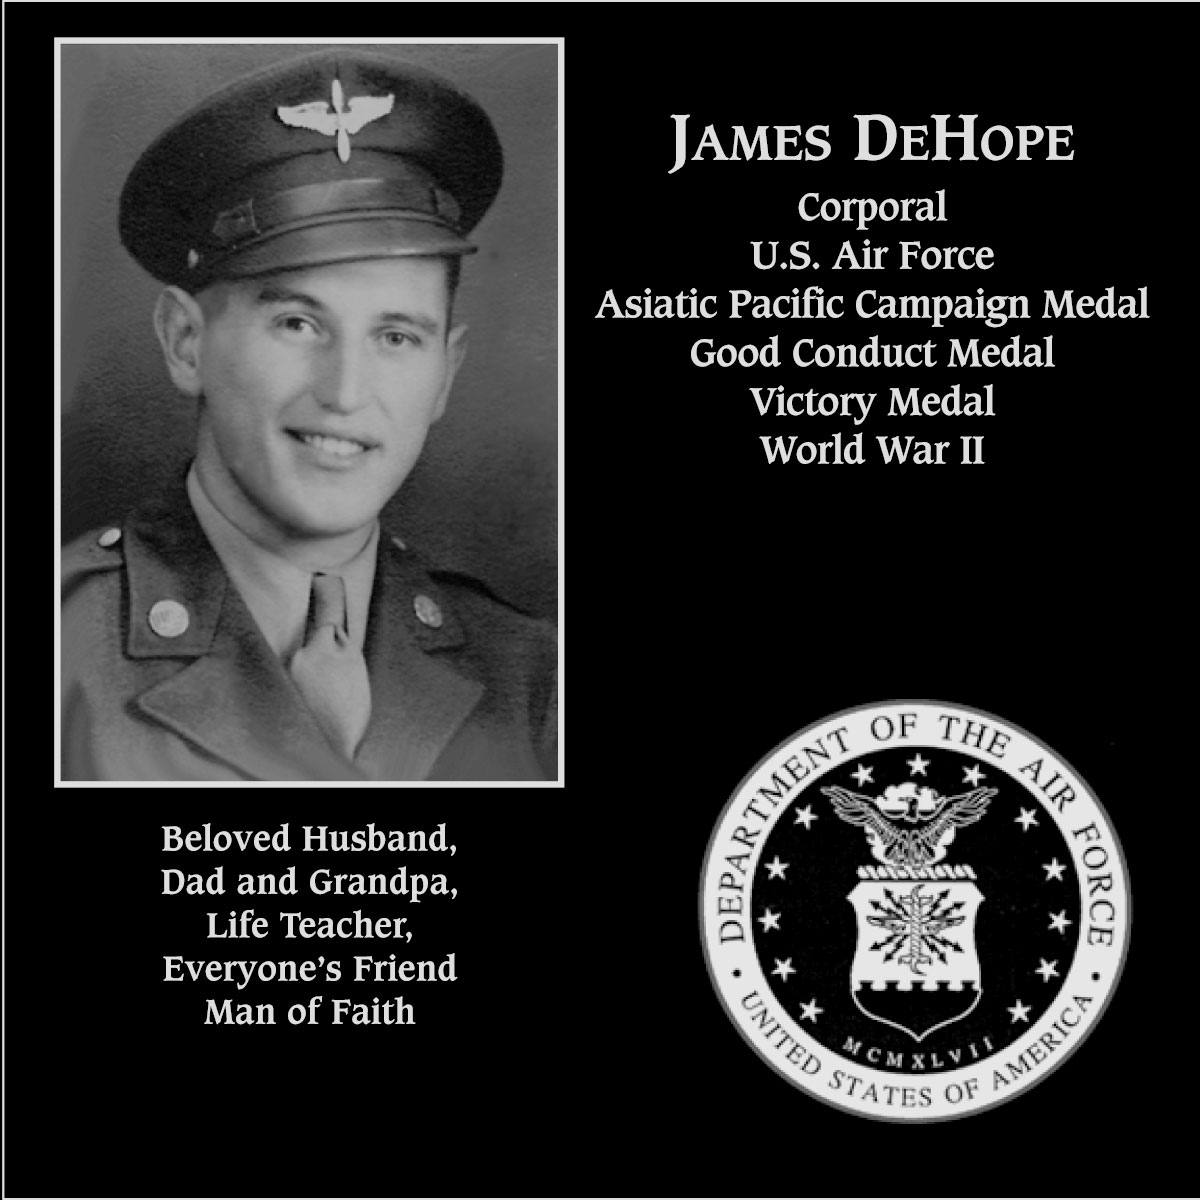 James DeHope